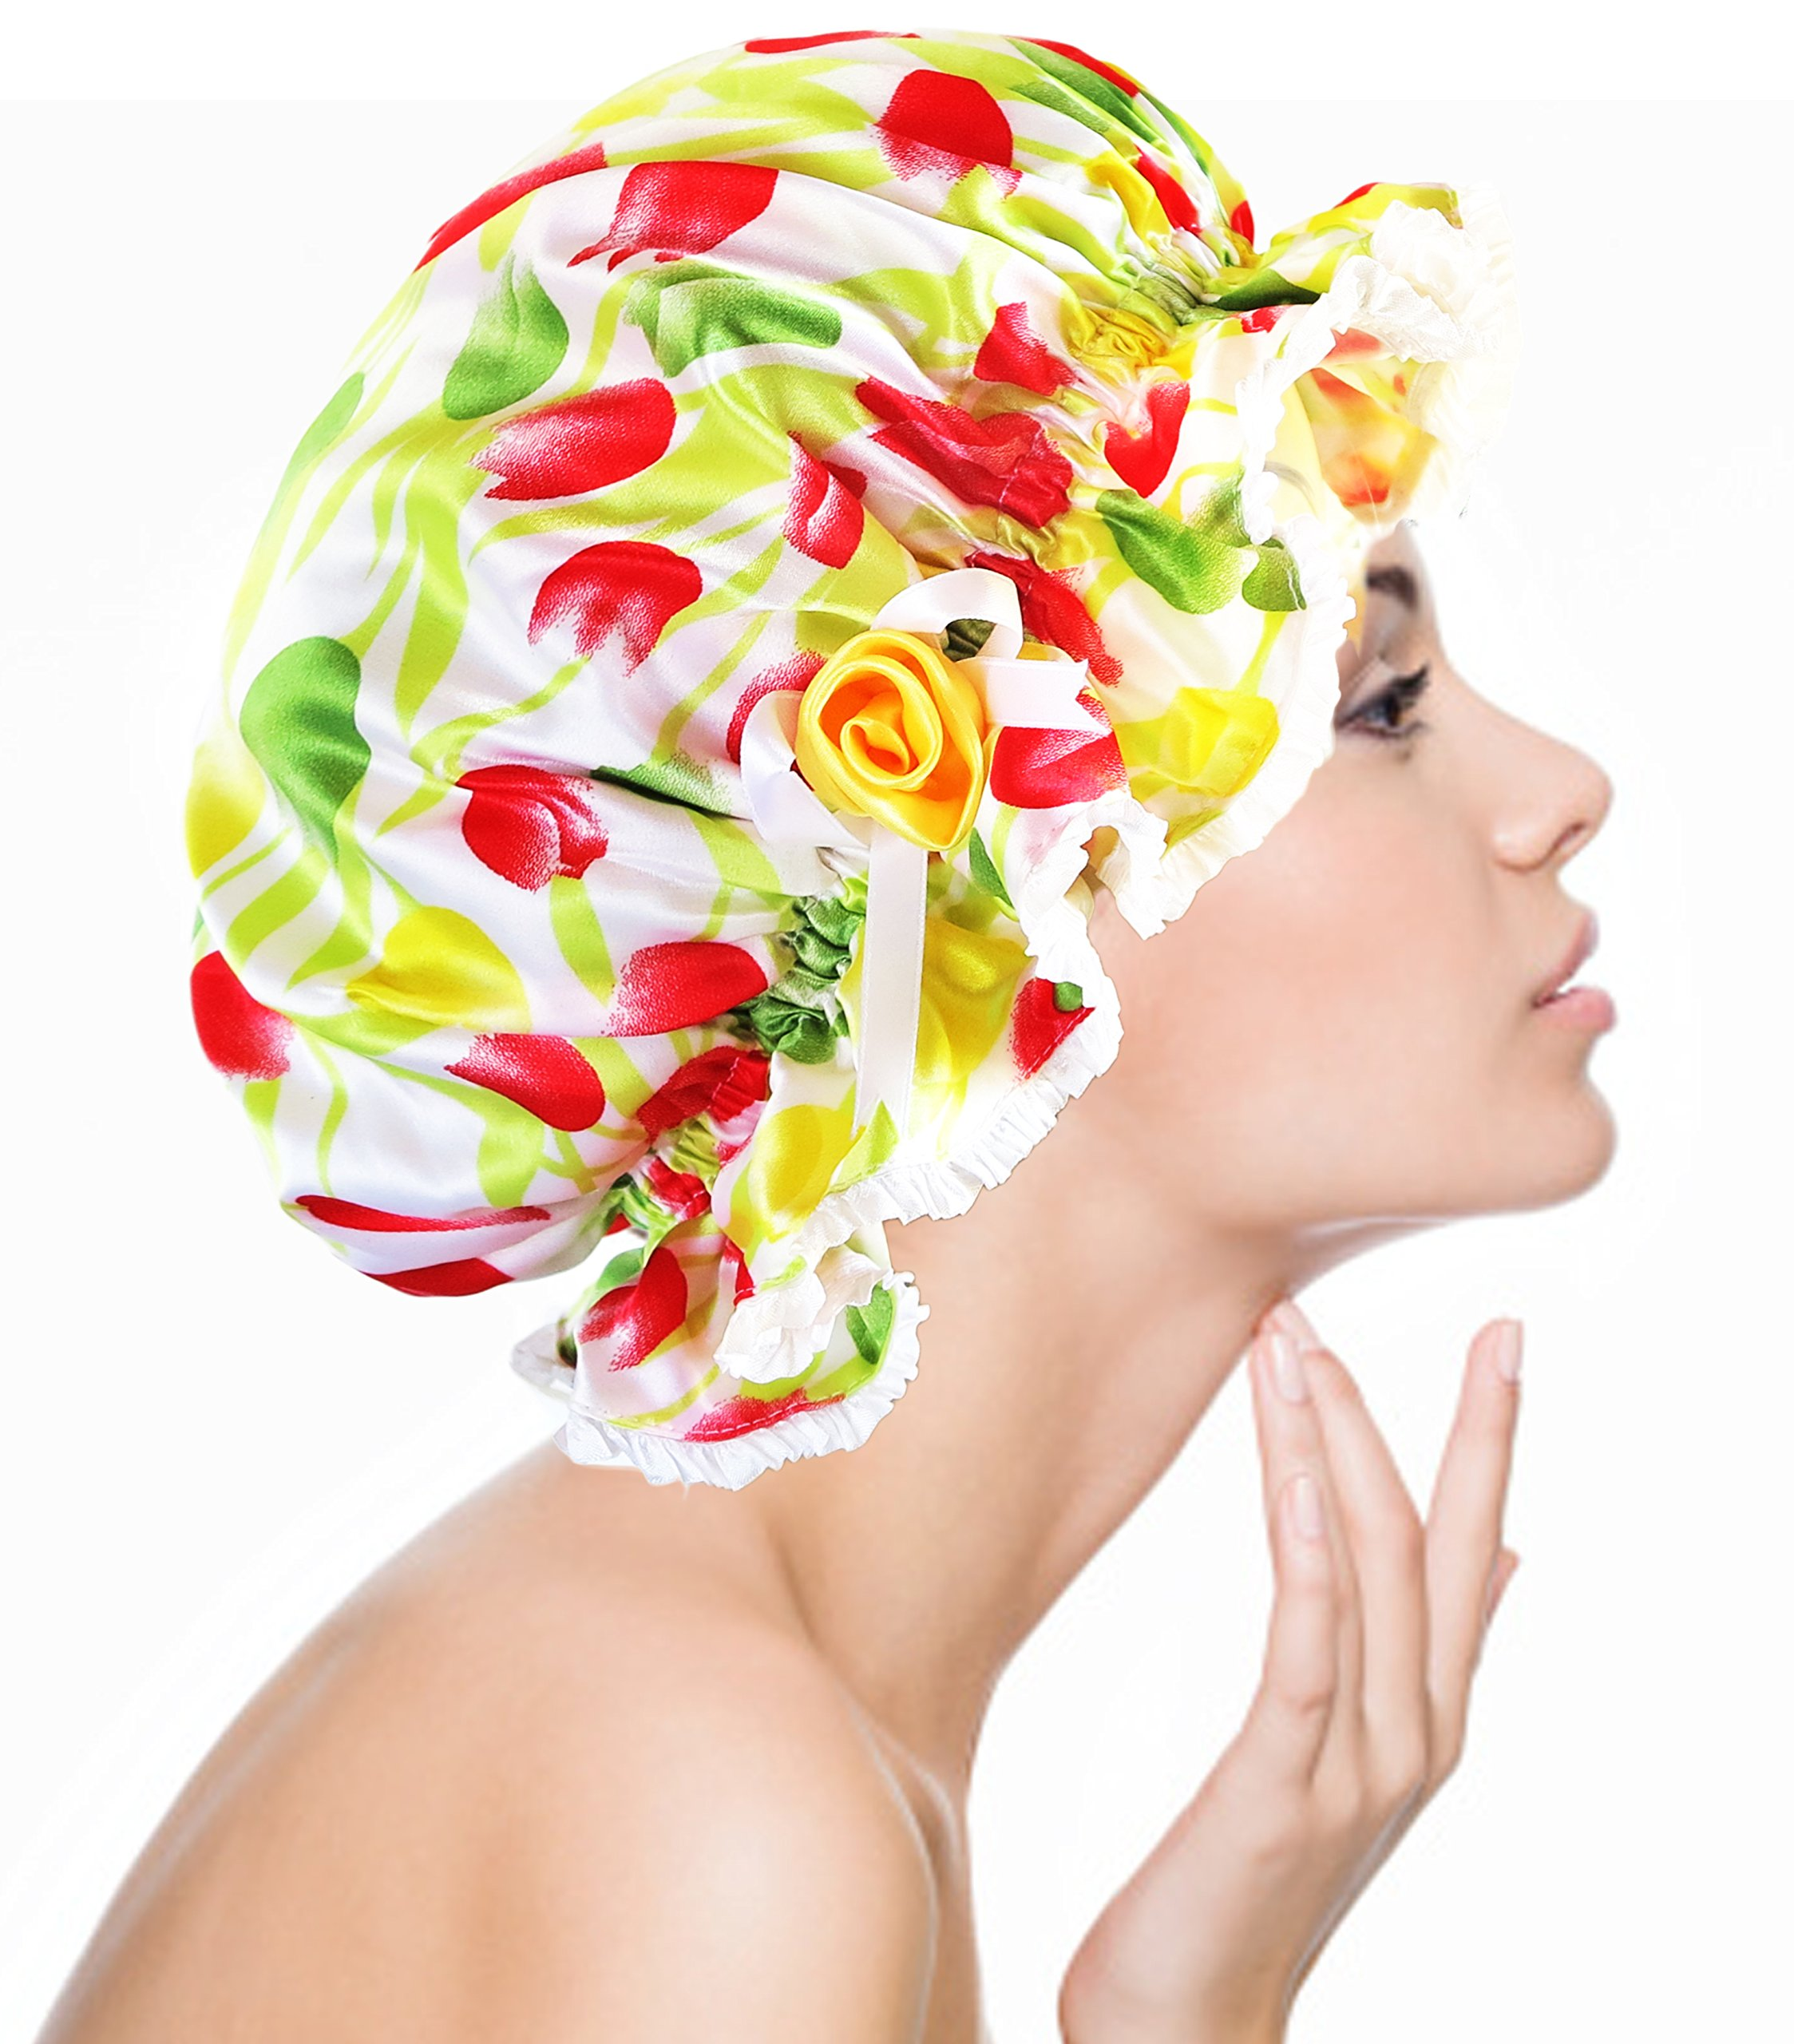 Silk Charmeuse Quick Dry Non Toxic Plastic Liner Shower Cap Handcrafted In US -One Size